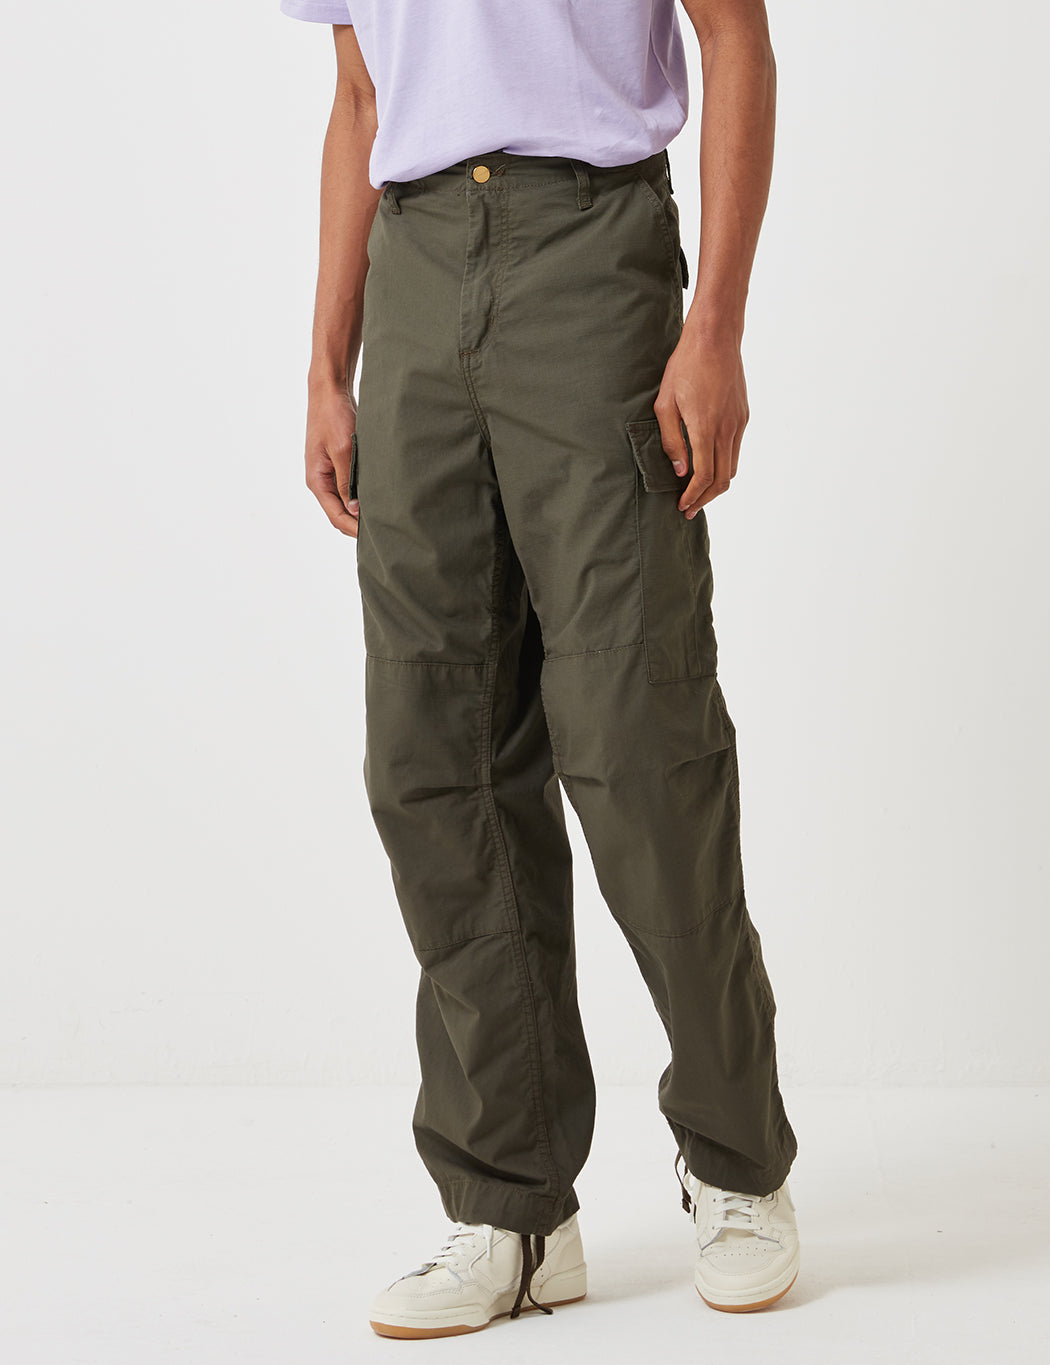 Carhartt Cargo Pants (Relaxed Fit) - Cypress Green   URBAN EXCESS.